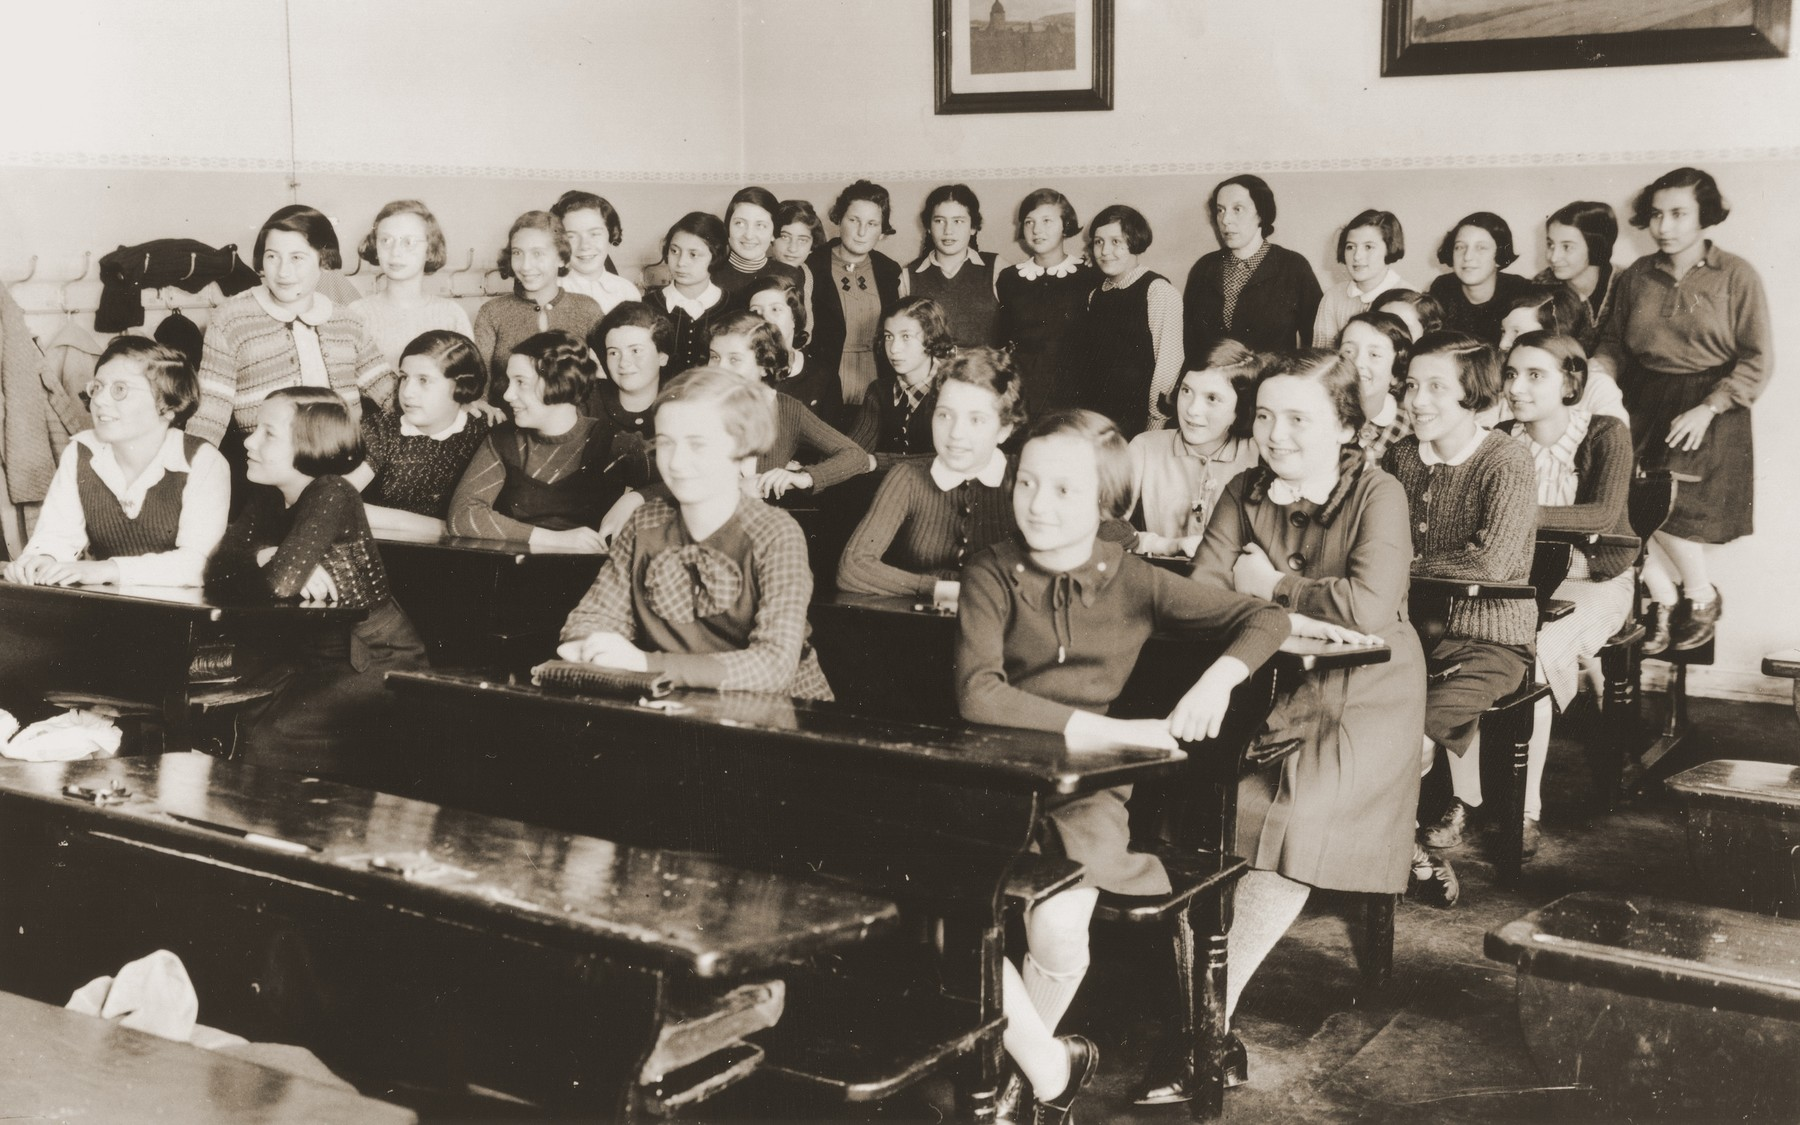 Jewish students in a classroom at the Philanthropin school in Frankfurt.  Lore Gotthelf is pictured second from the right in the second row from the back.